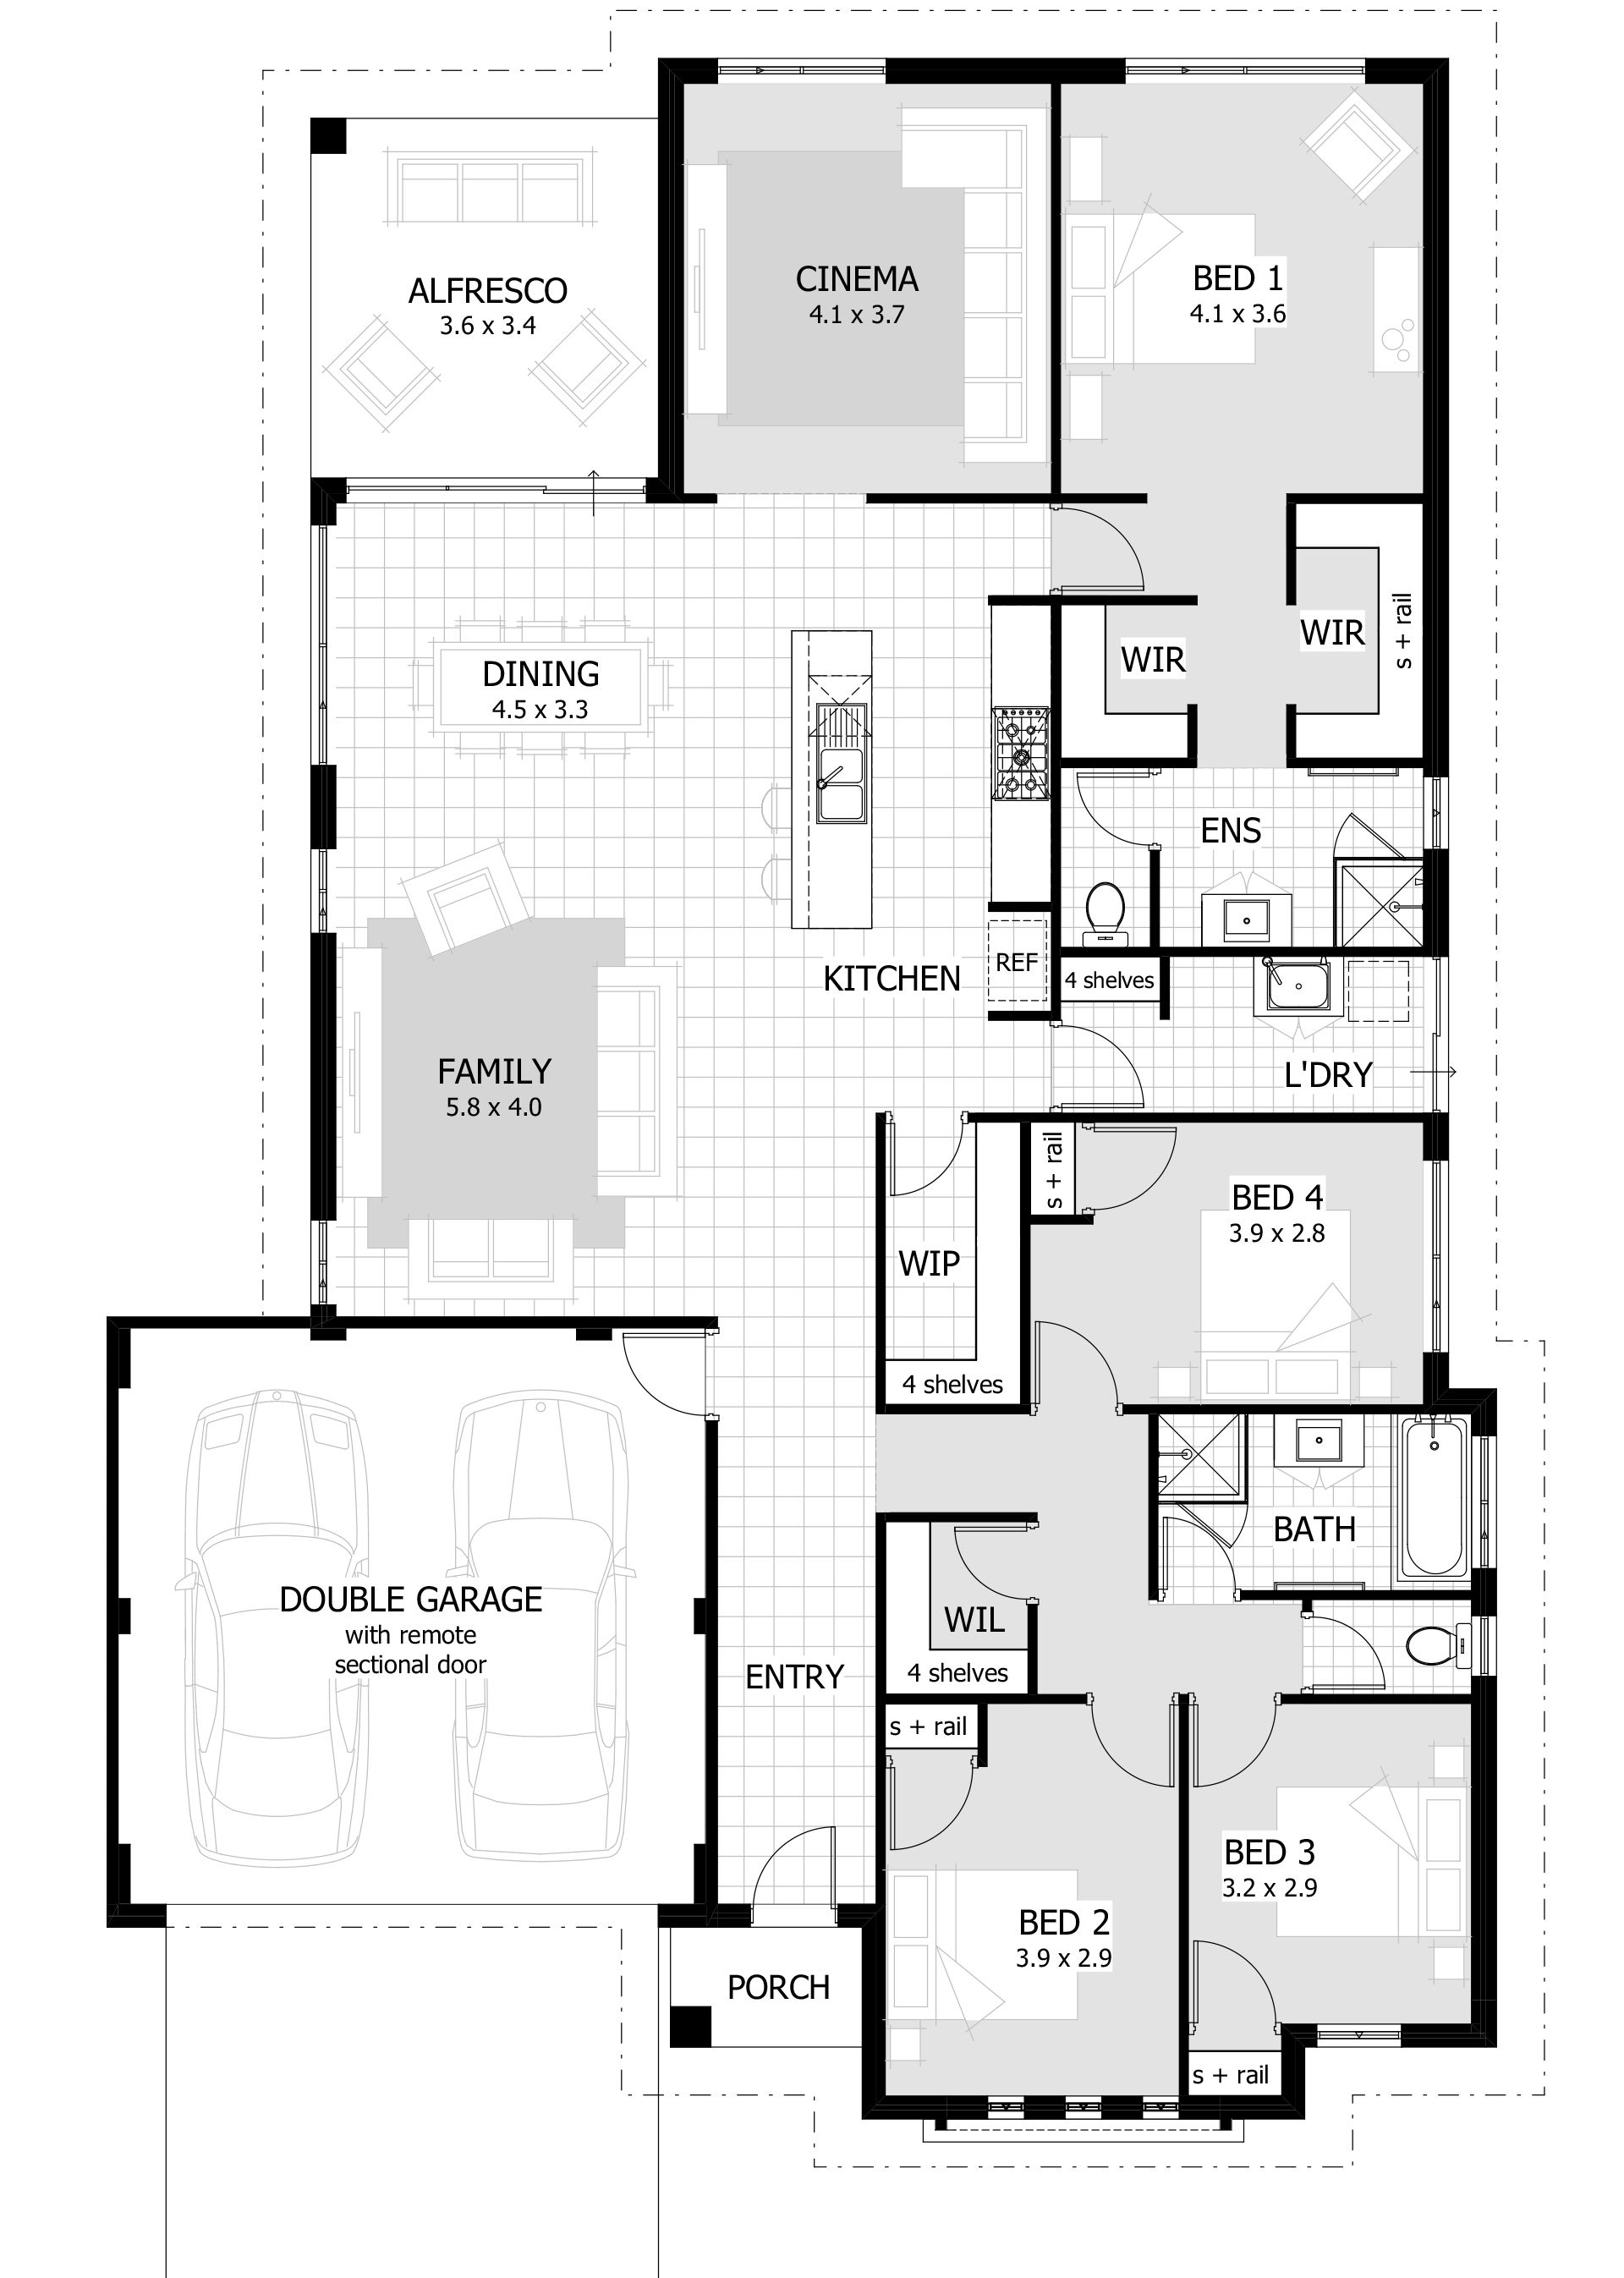 3 X 2 Home Designs Part - 27: Contempo Collection Home Designs | Celebration Homes